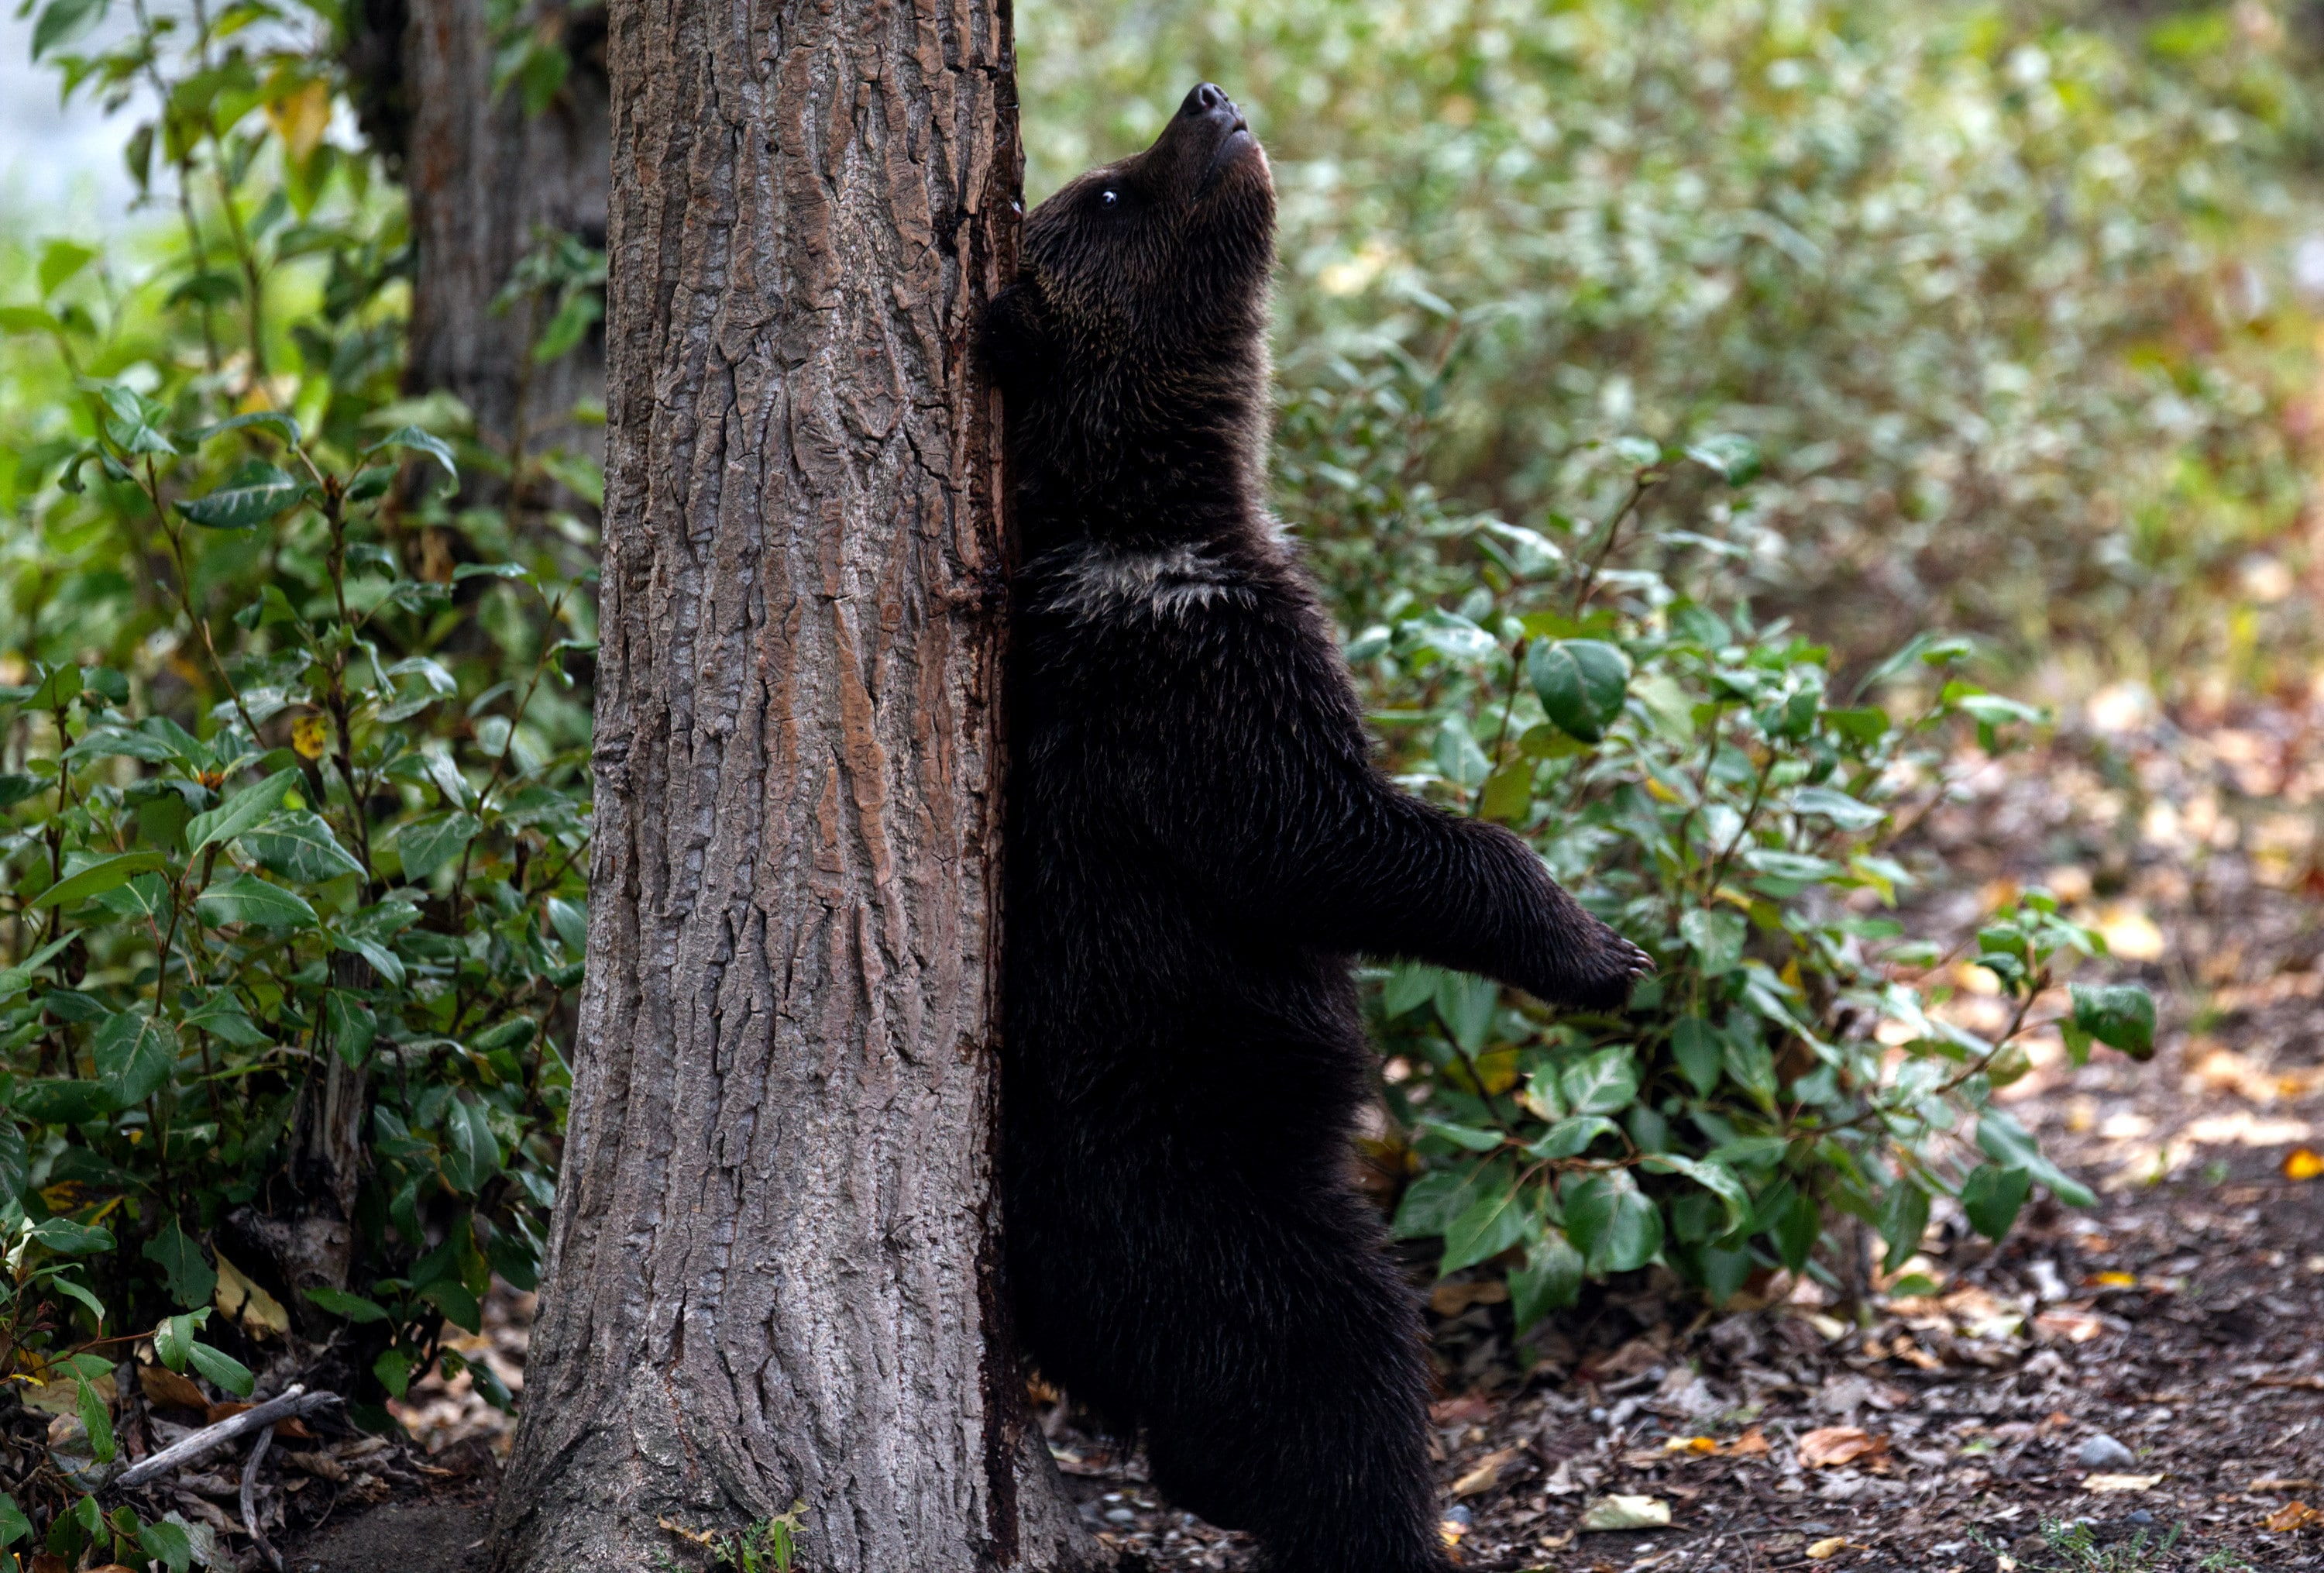 Bear cub standing and scratching his back on tree trunk. (National Geographic for Disney+/Samuel Ellis)